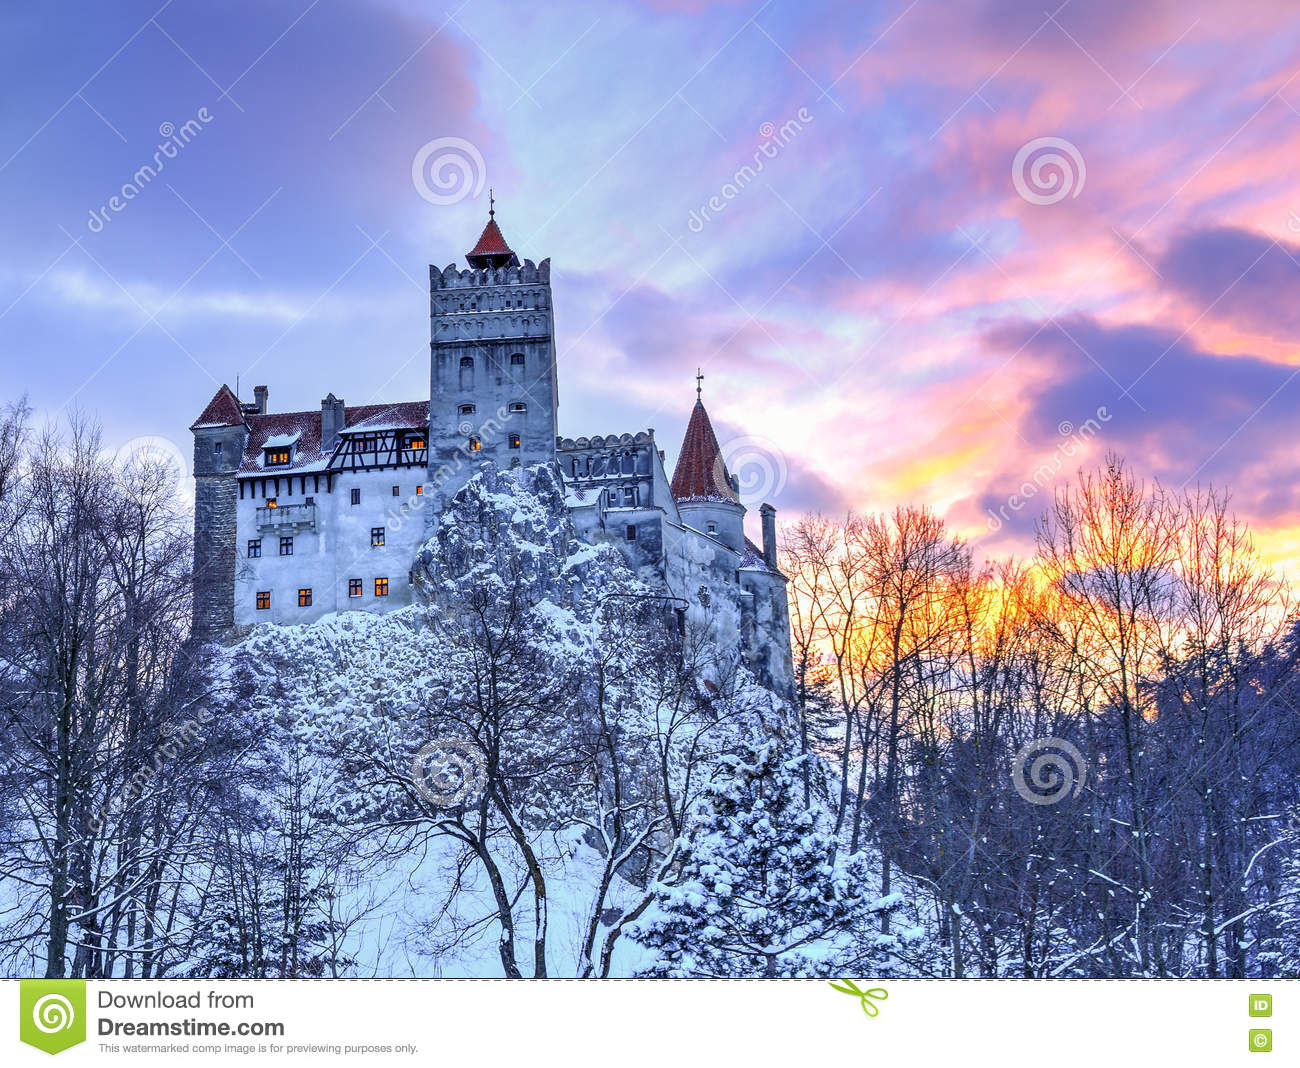 Traditional castle of Bran, Romania